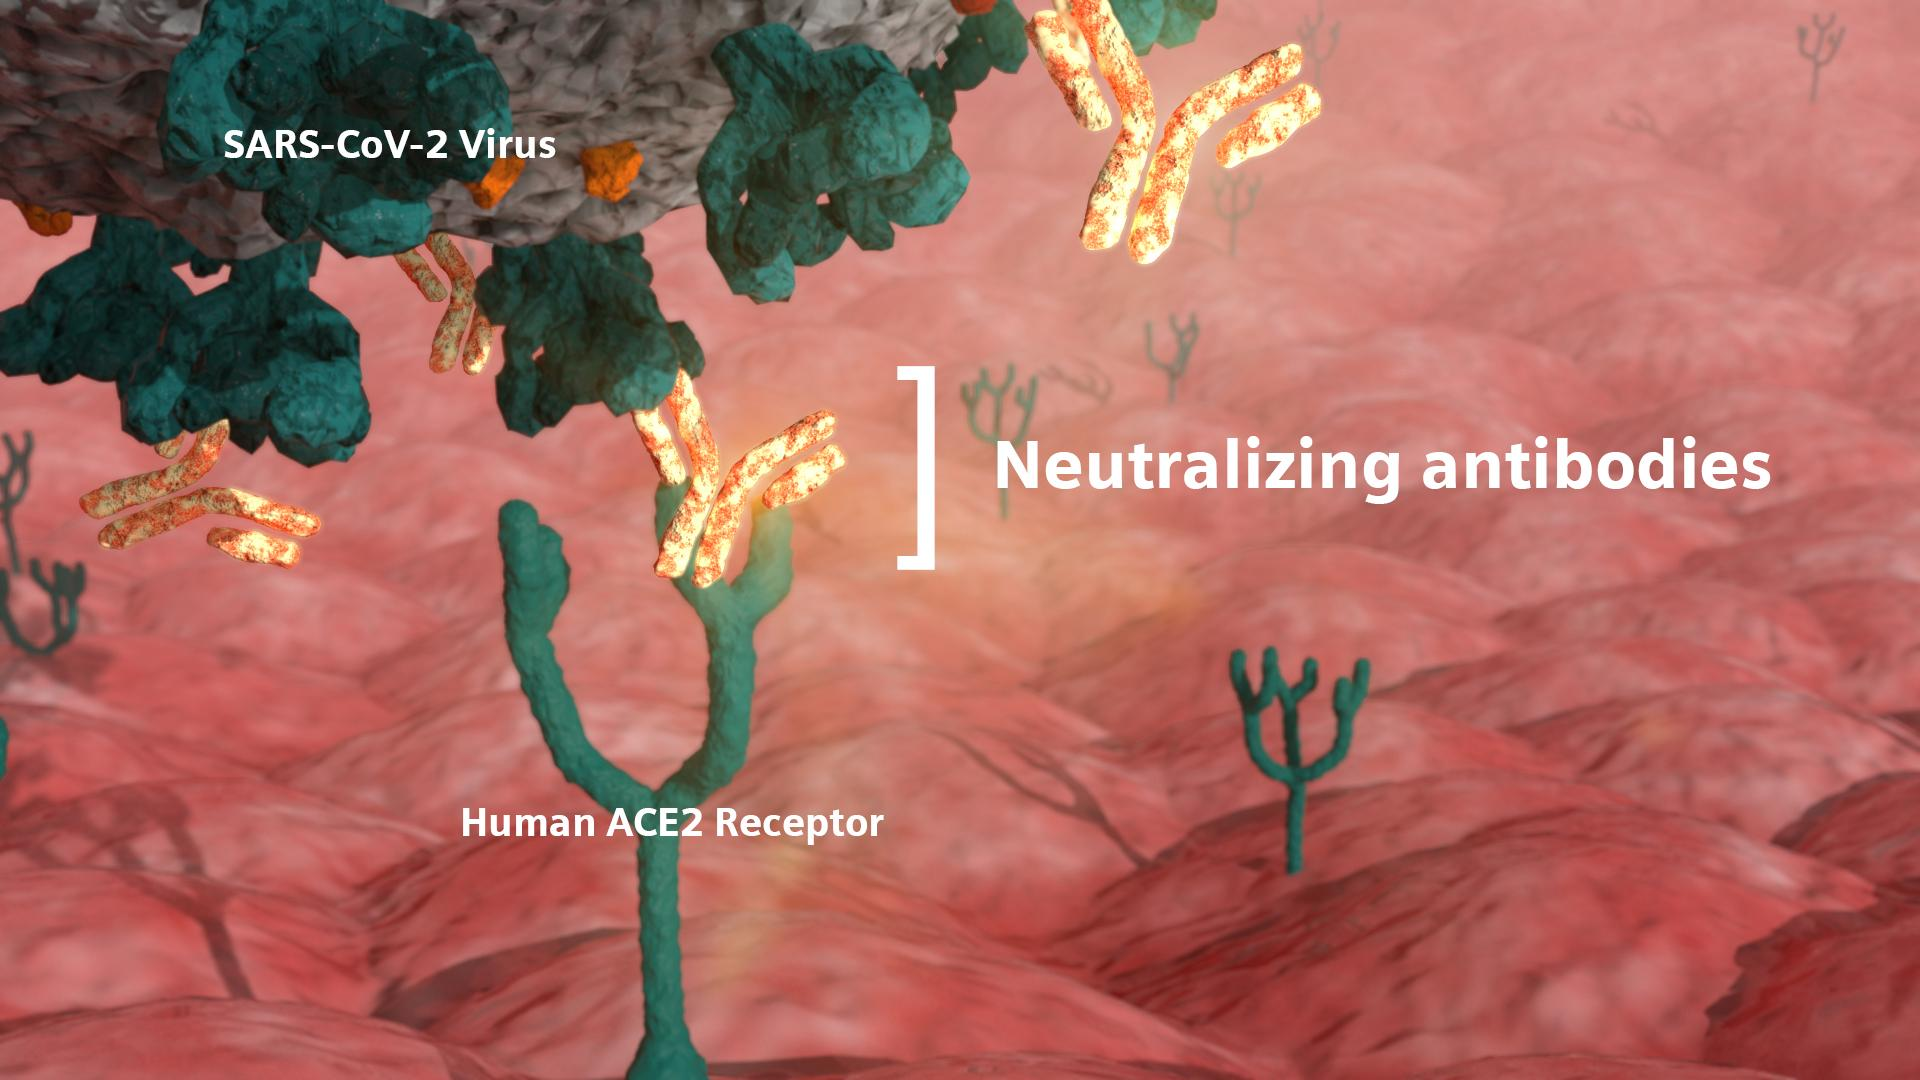 Neutralizing antibodies are critical in the fight against COVID-19 because they defend cells from infection by the virus.